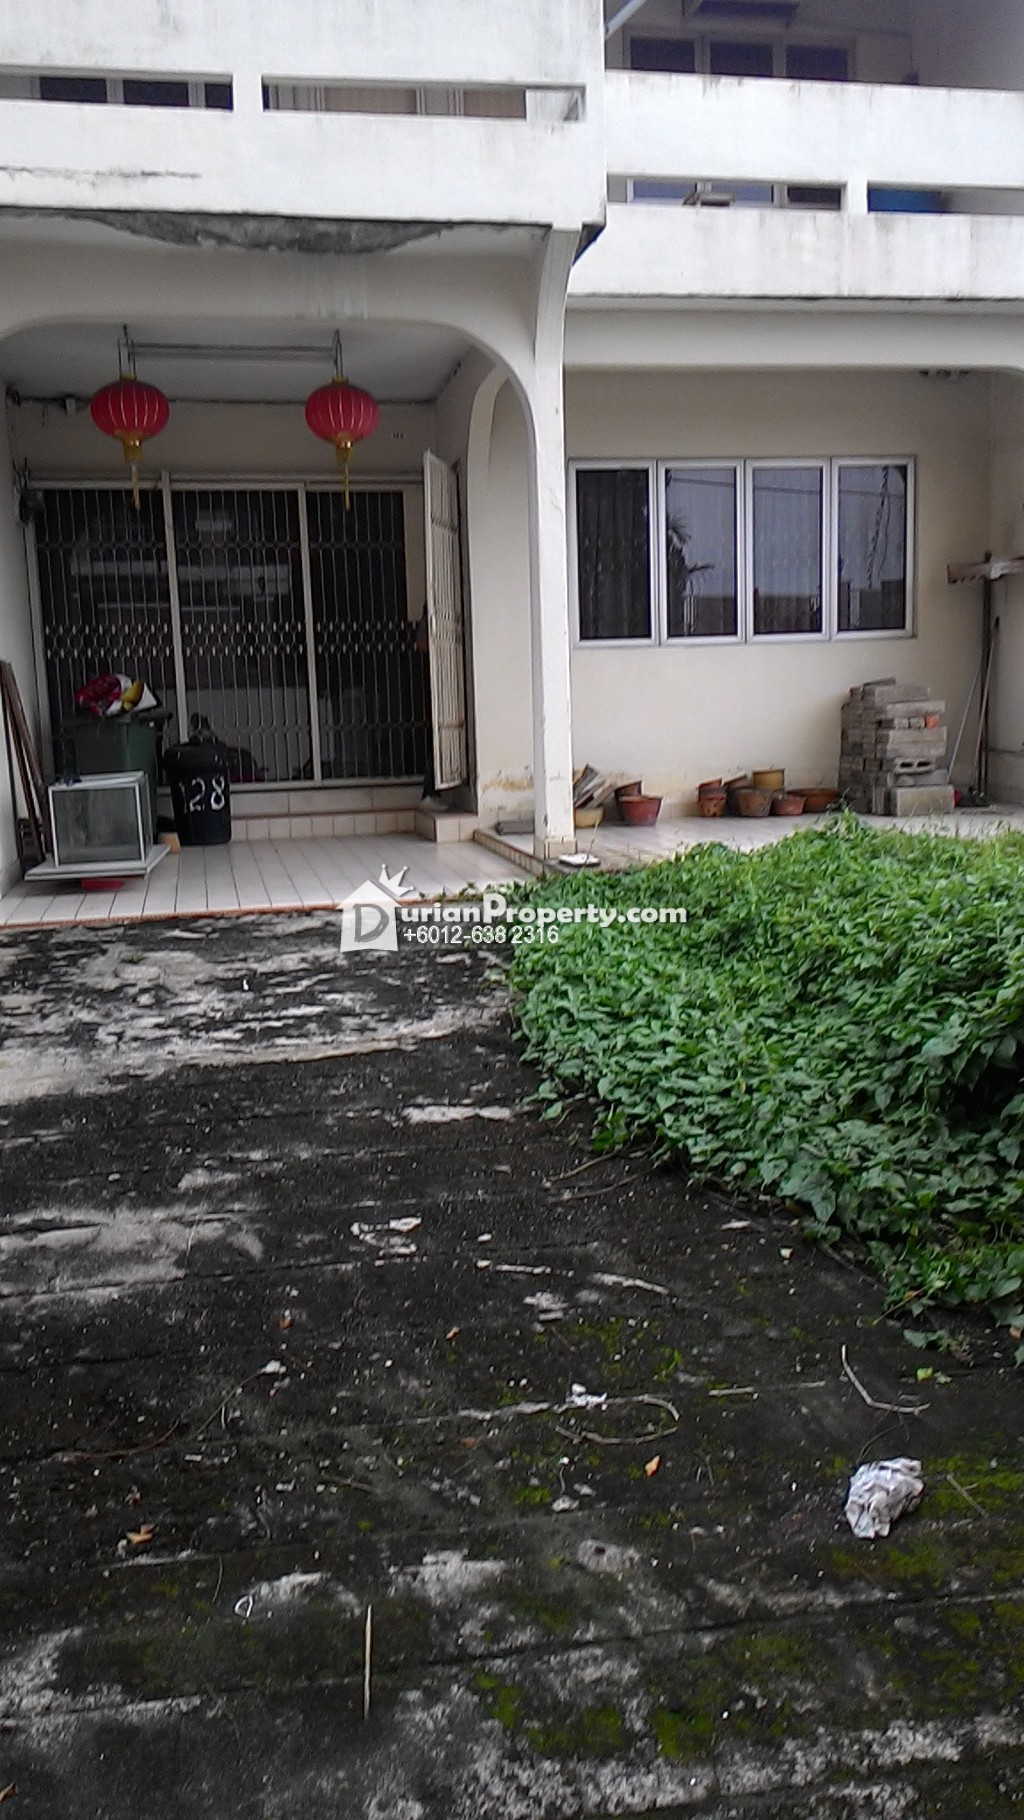 Splendid Terrace House For Sale At Happy Garden Old Klang Road For Rm  With Fascinating Terrace House For Sale At Happy Garden Old Klang Road With Easy On The Eye Hanging Garden Lights Also Covent Garden Sauna In Addition Garden Shed Plans Free And English Country Garden Plants As Well As Restaurants Covent Garden Tripadvisor Additionally Garden Machinery Surrey From Durianpropertycommy With   Fascinating Terrace House For Sale At Happy Garden Old Klang Road For Rm  With Easy On The Eye Terrace House For Sale At Happy Garden Old Klang Road And Splendid Hanging Garden Lights Also Covent Garden Sauna In Addition Garden Shed Plans Free From Durianpropertycommy